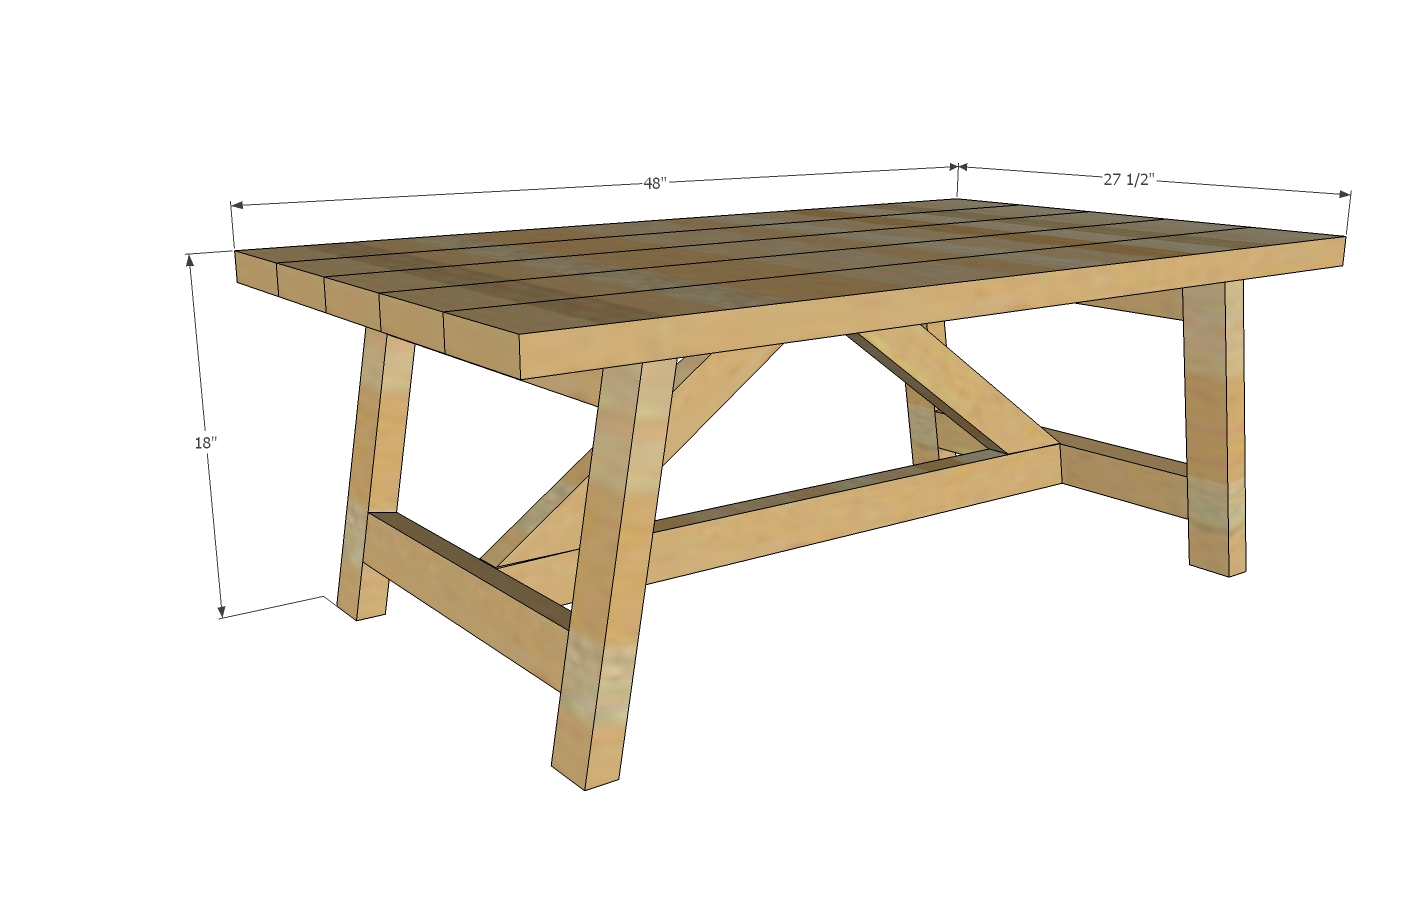 ... plans coffee table, wooden sheds in france, shed models plans